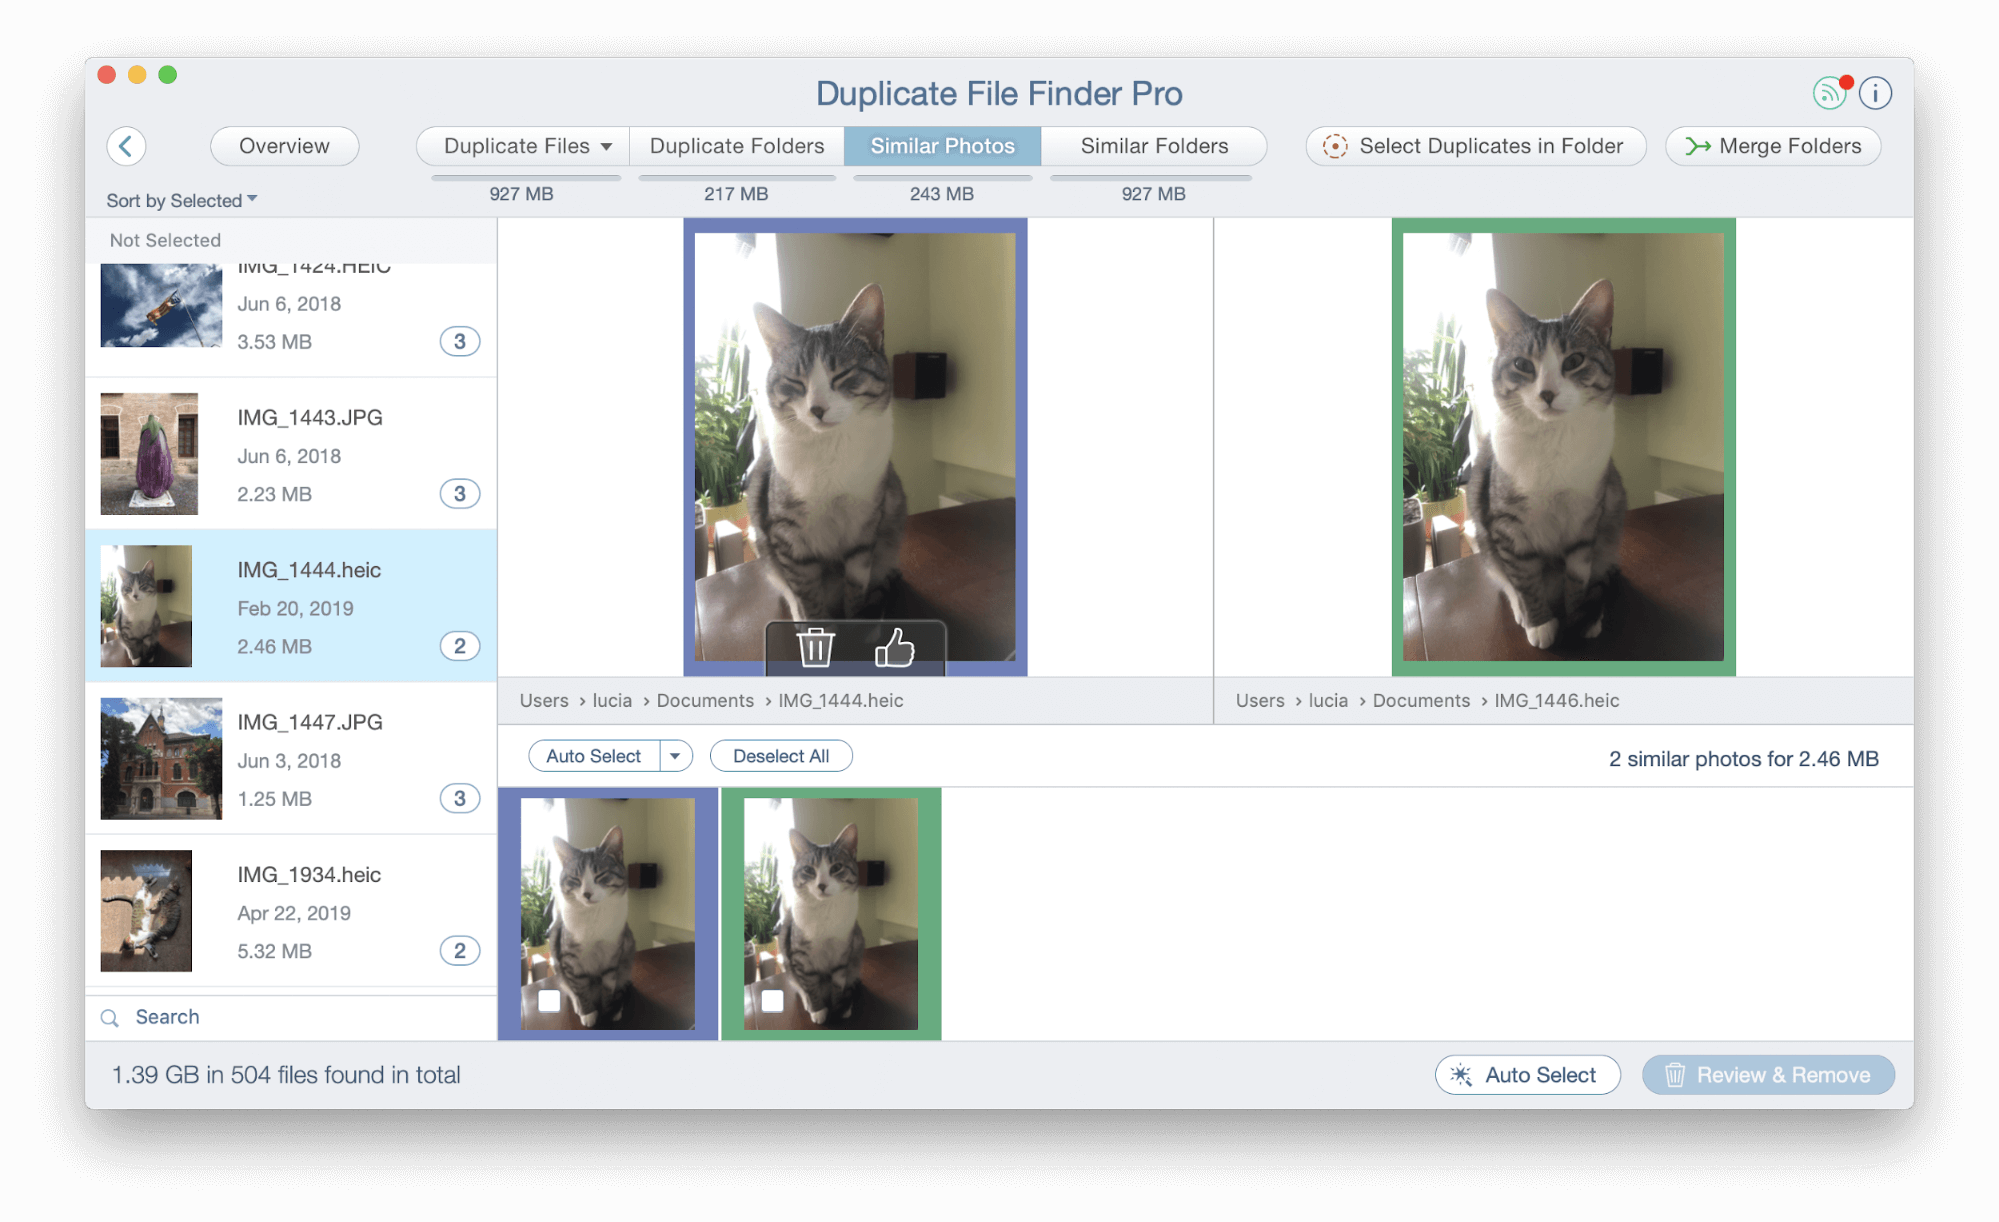 how to find similar photos